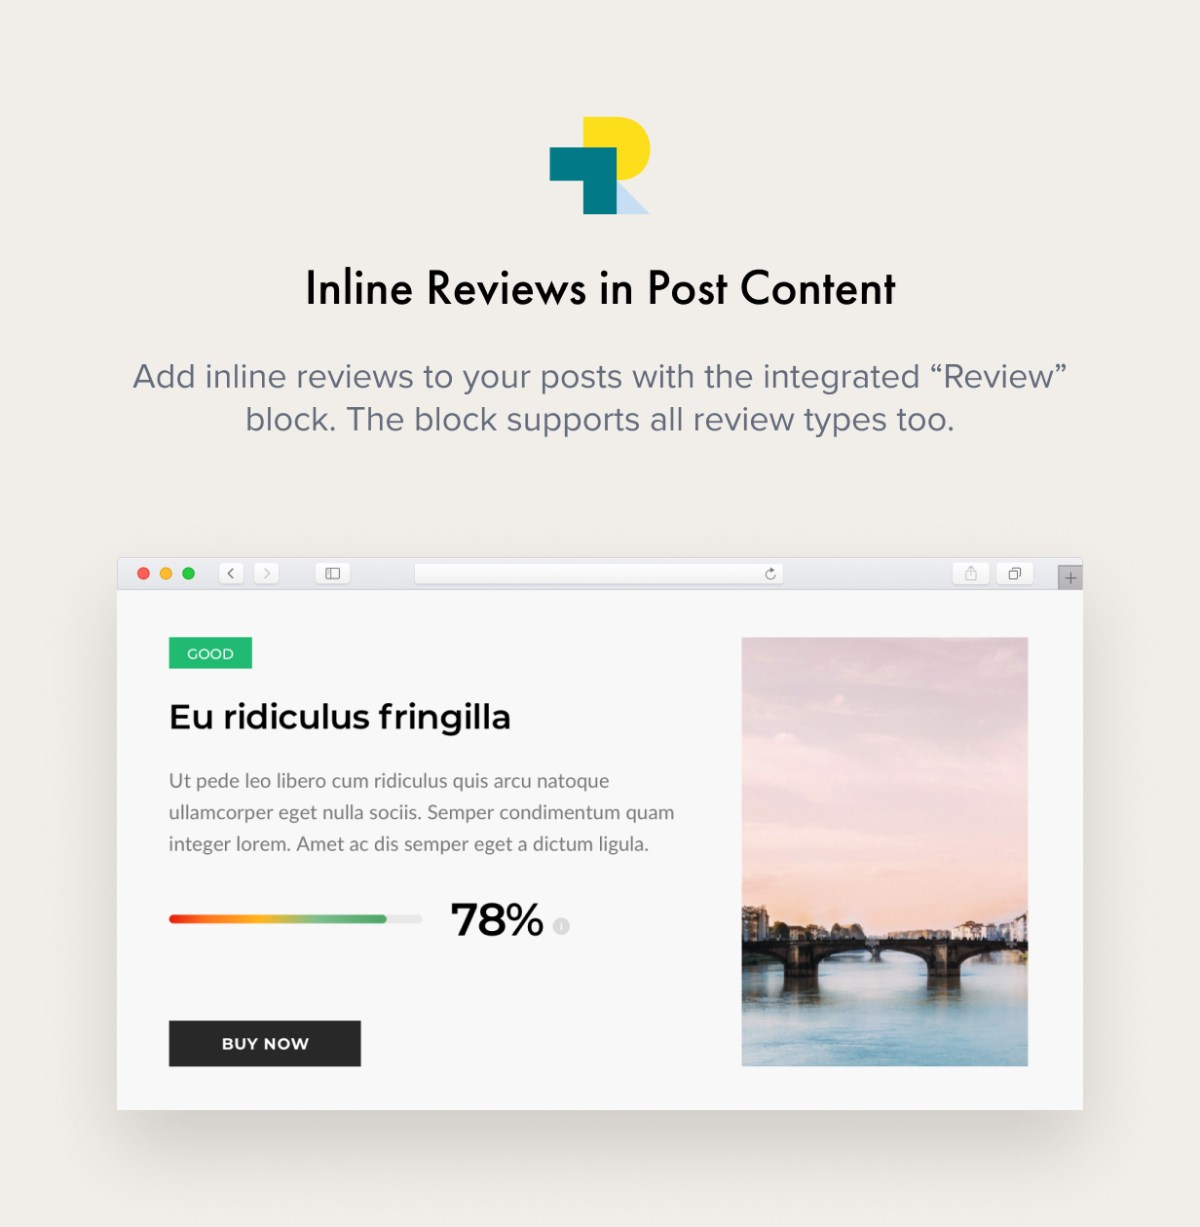 Inline Reviews in Post Content